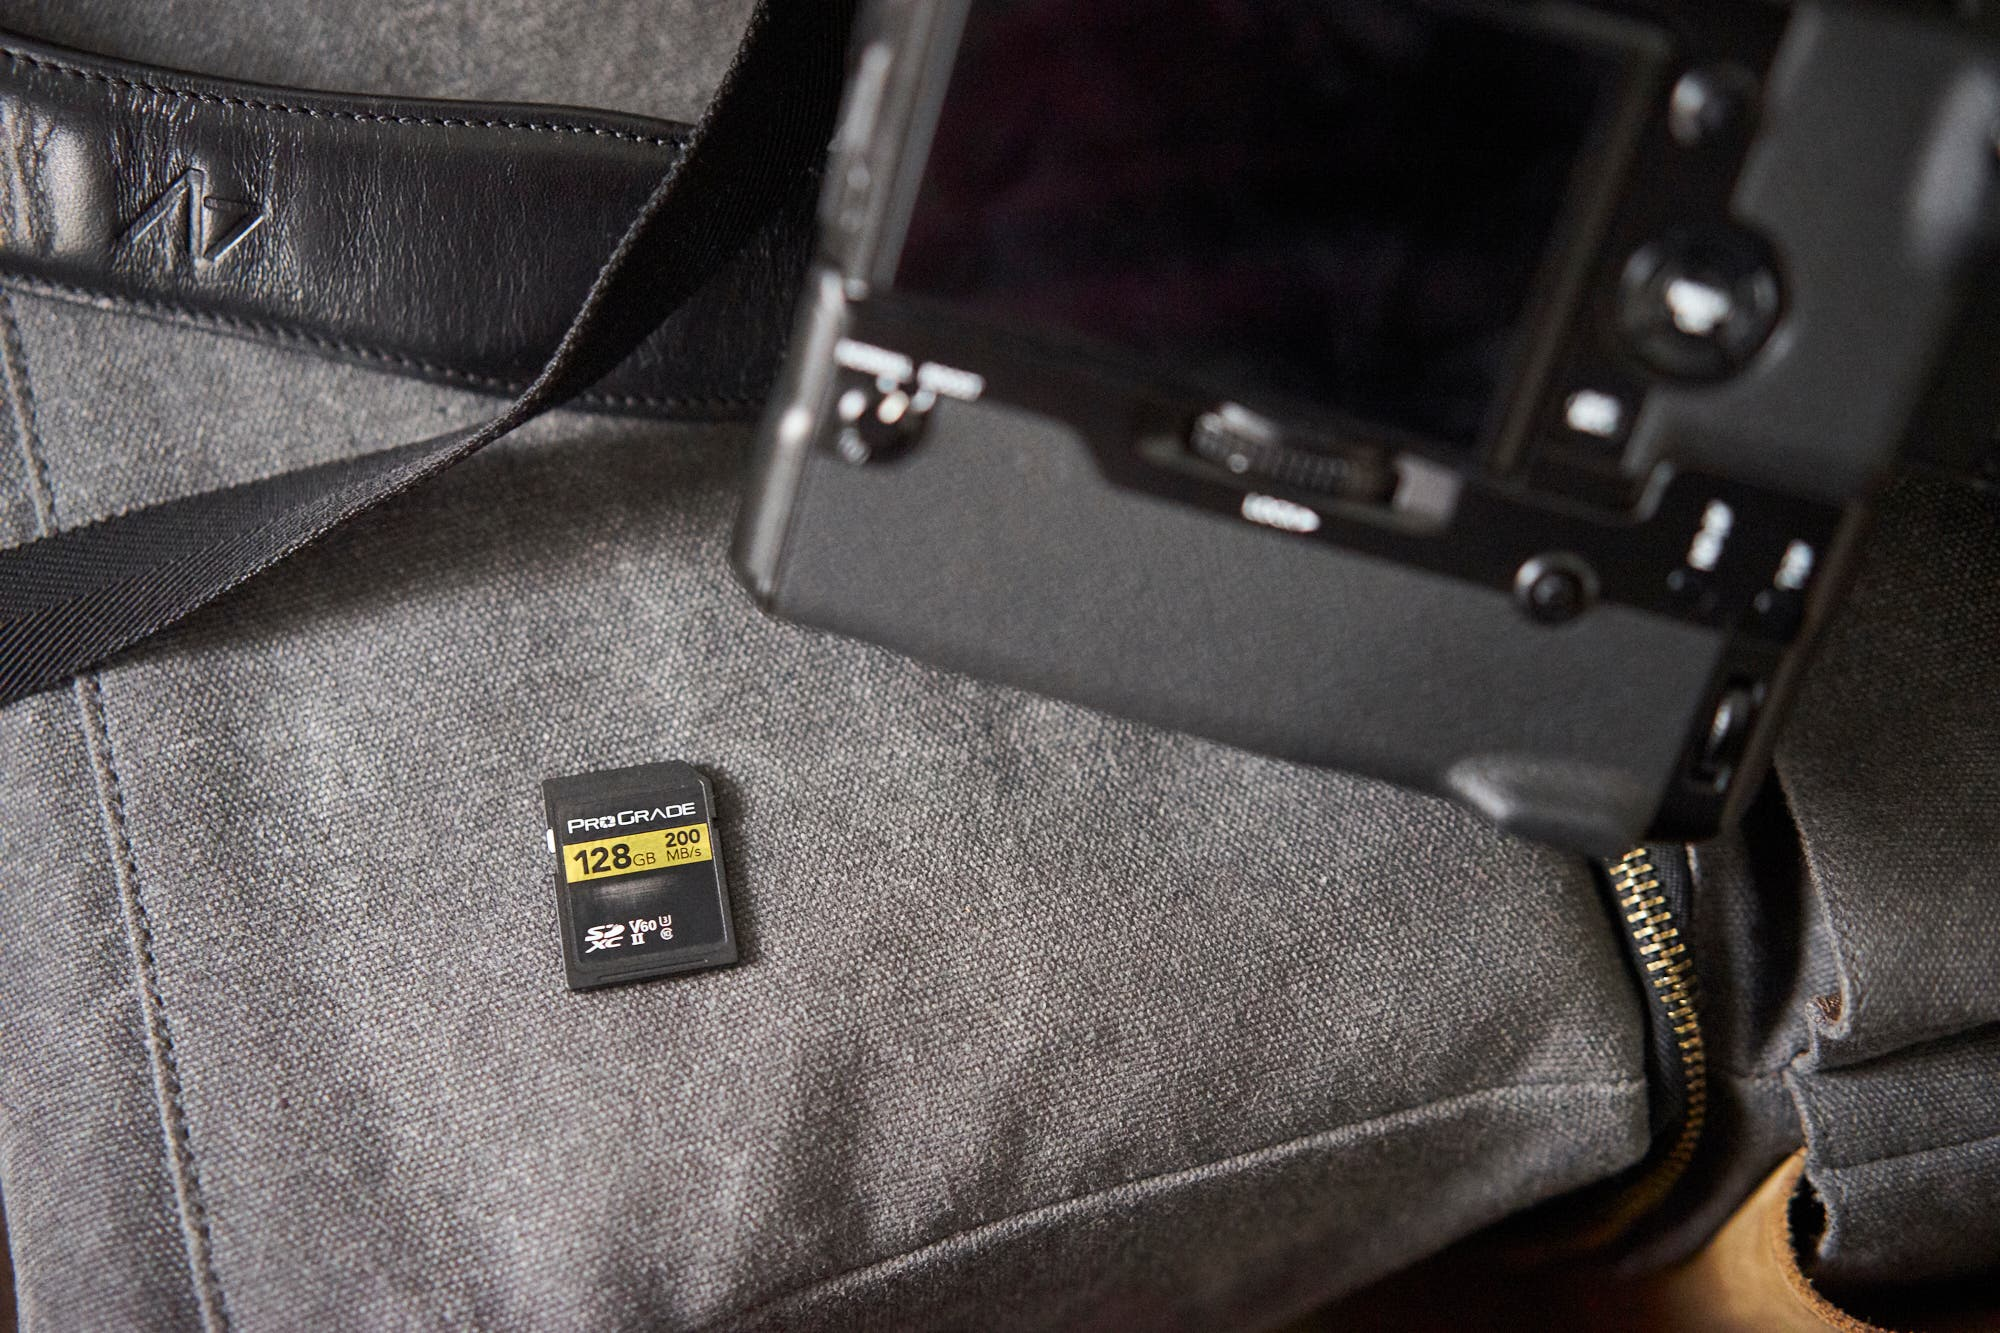 Quick Review: ProGrade Digital SDXC UHS-II Class U3 Card